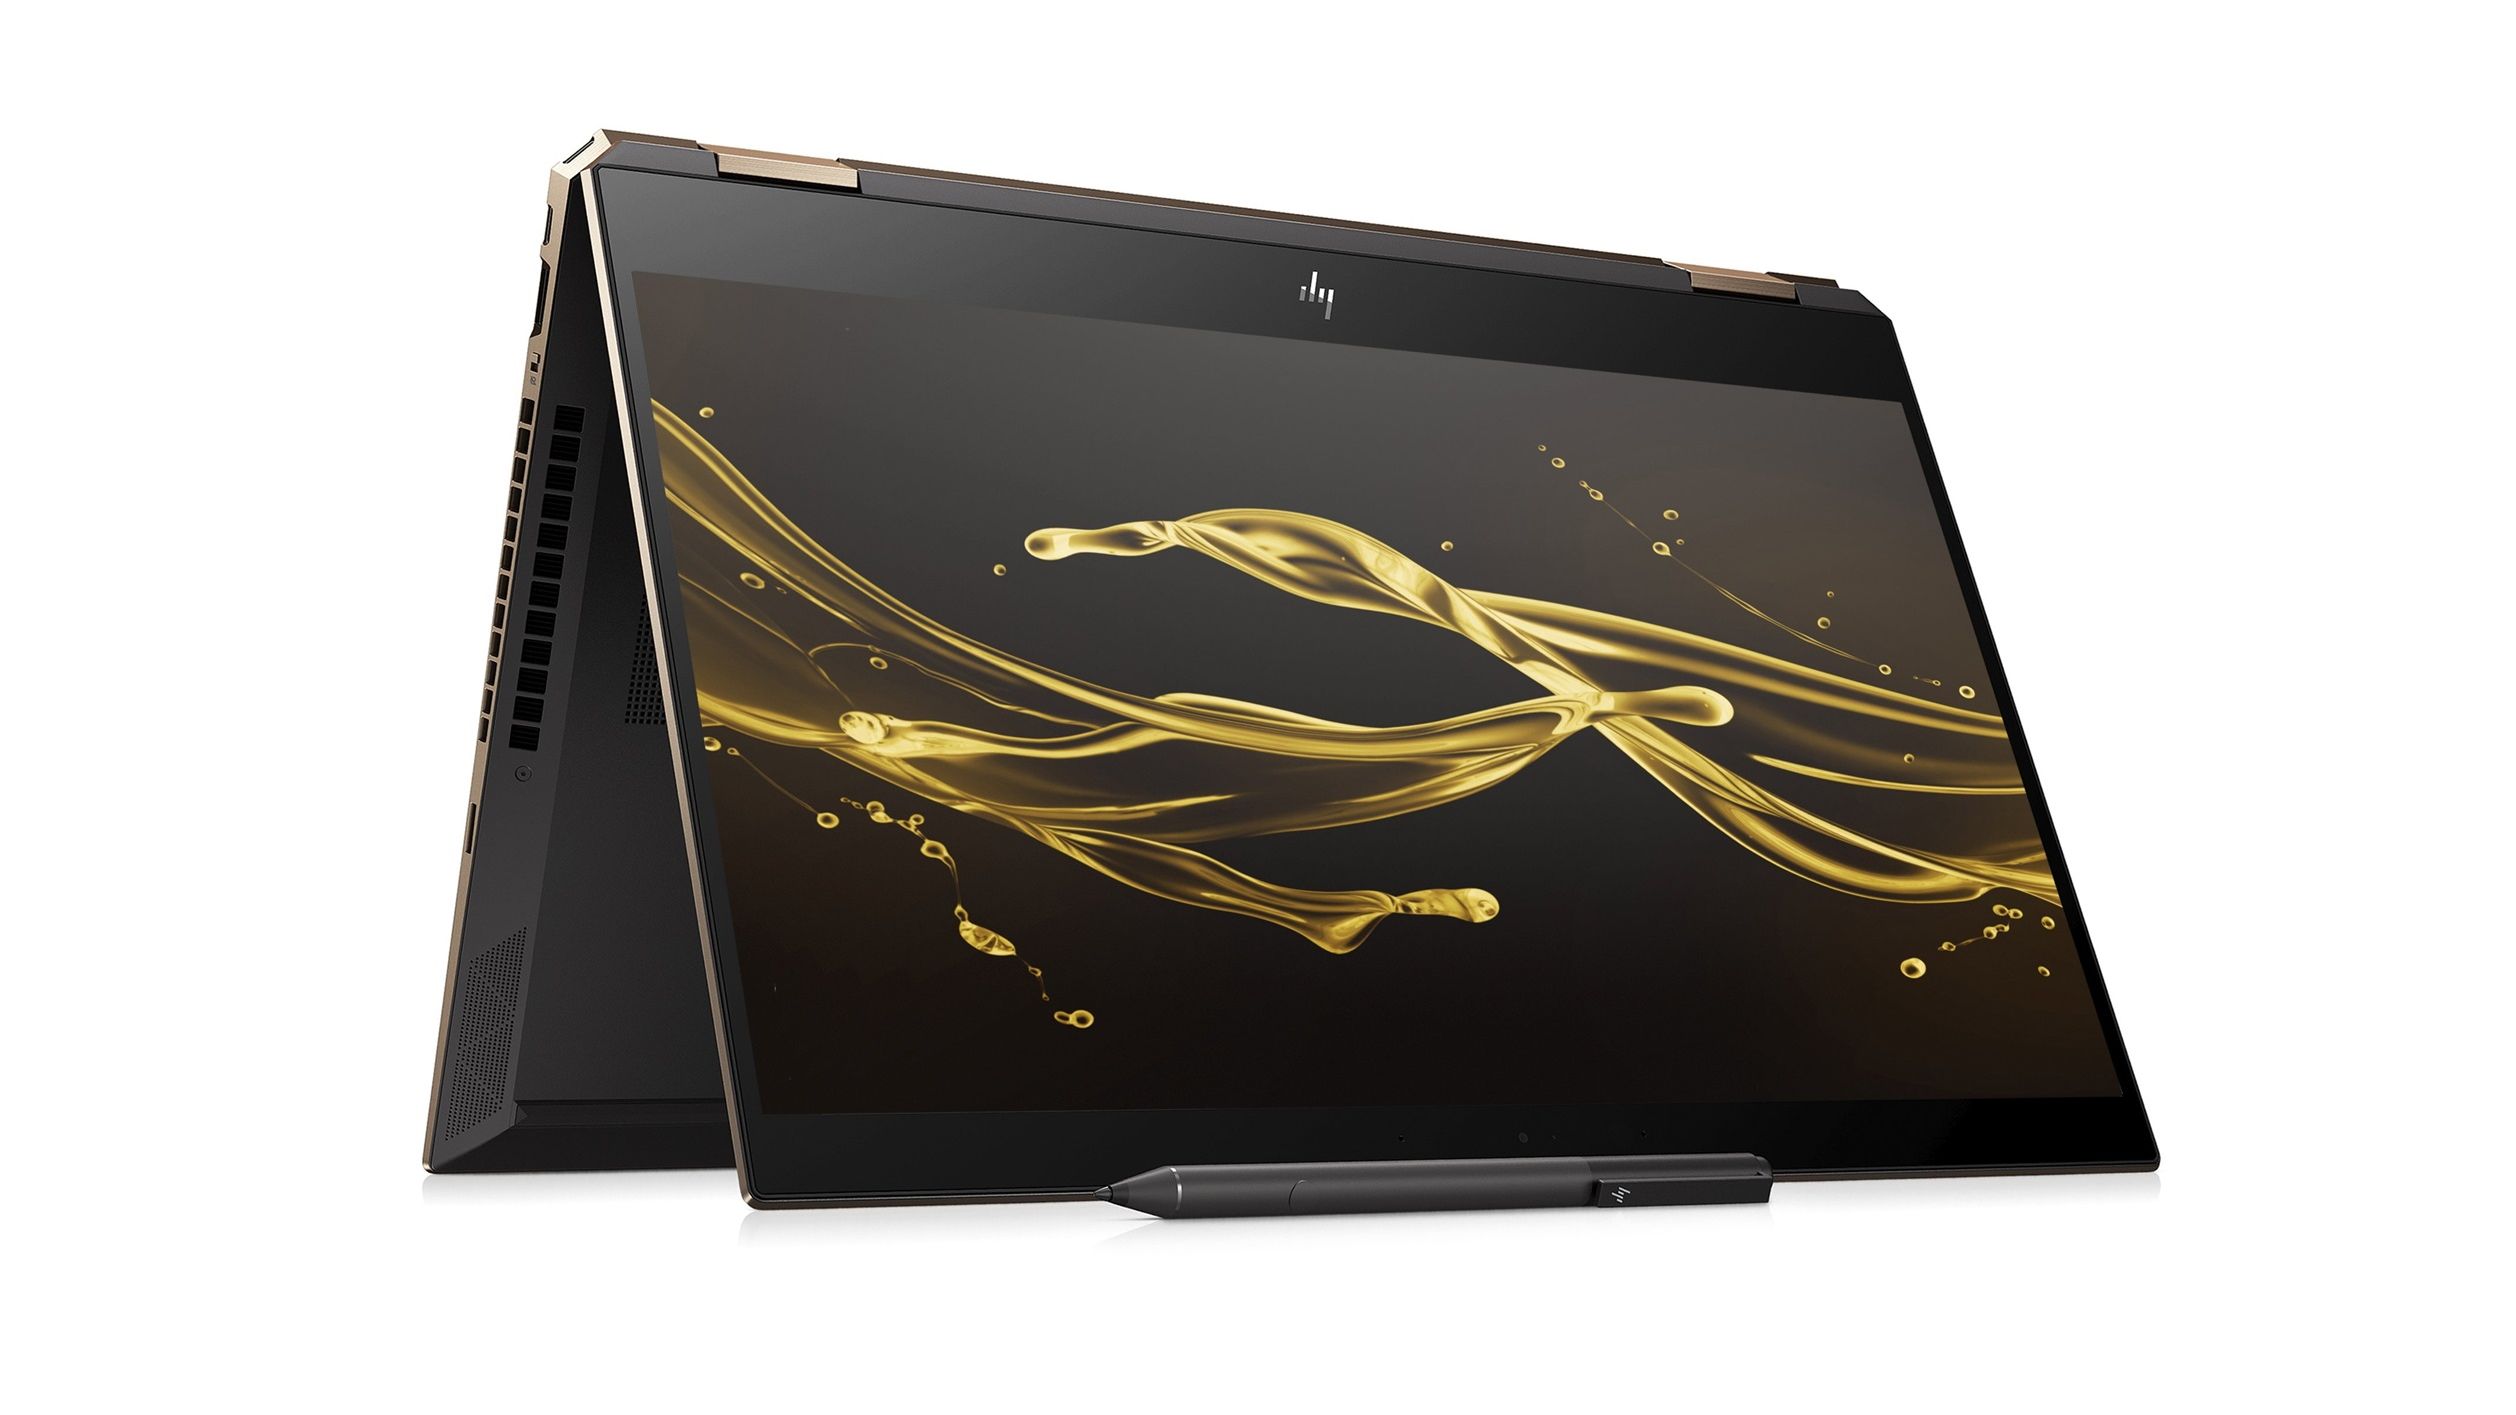 Image of the HP Spectre x360 folded in tent mode